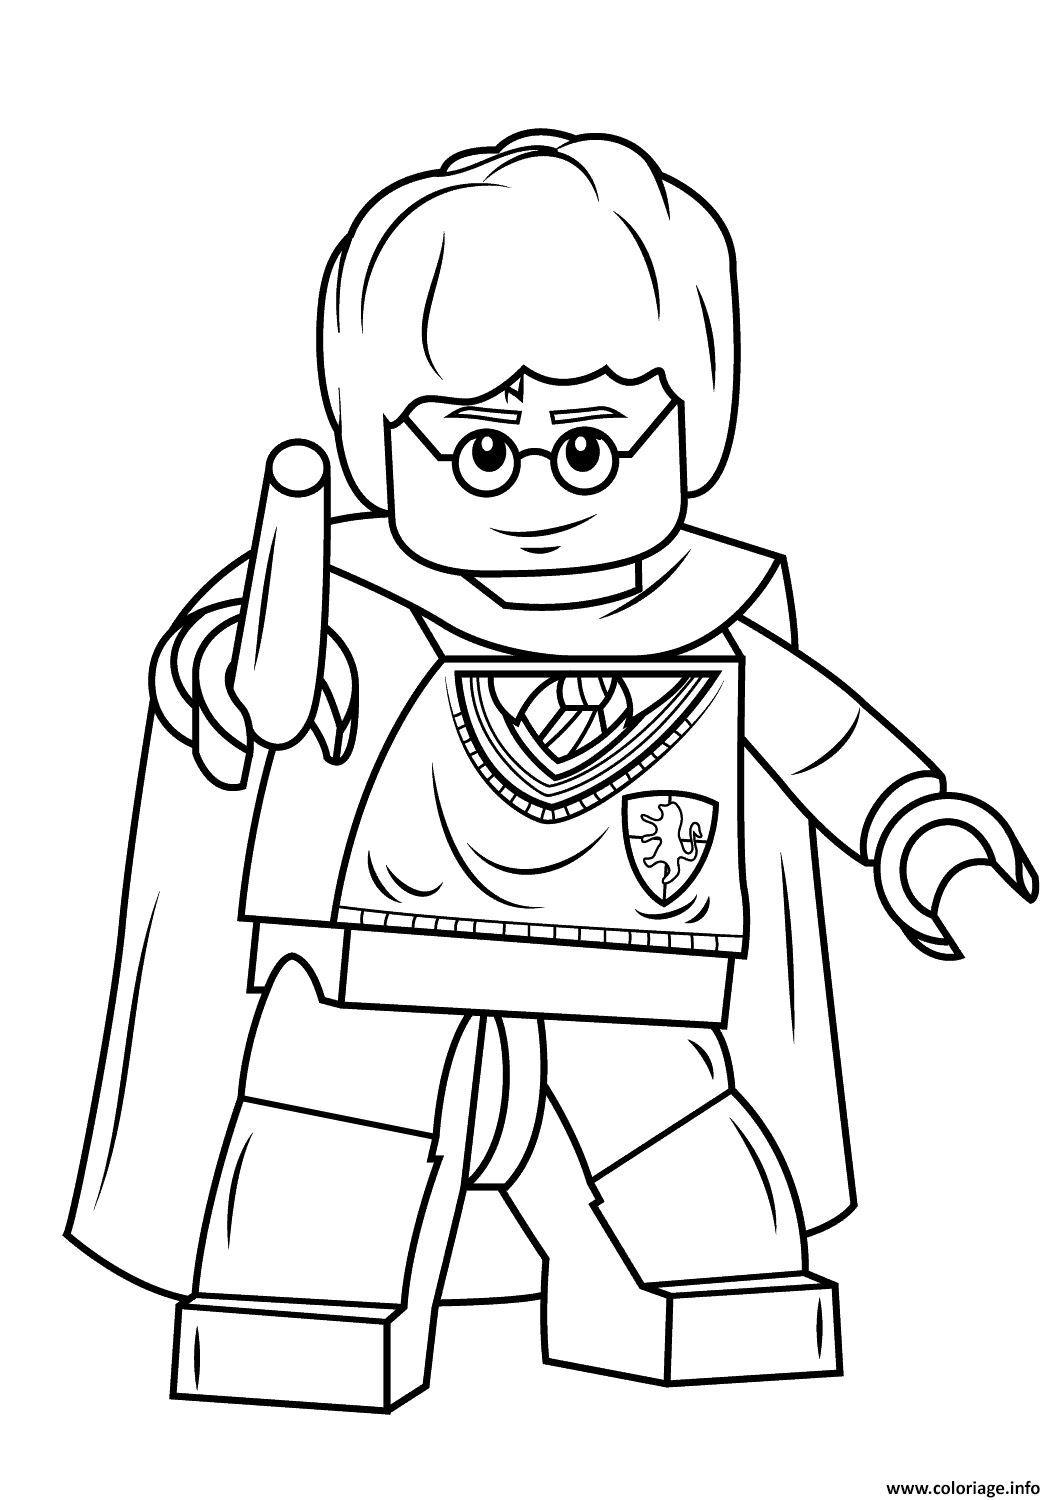 Coloriage En Ligne Harry Potter Gratuit.Coloriage Lego Harry Potter With Wand Harry Potter Dessin